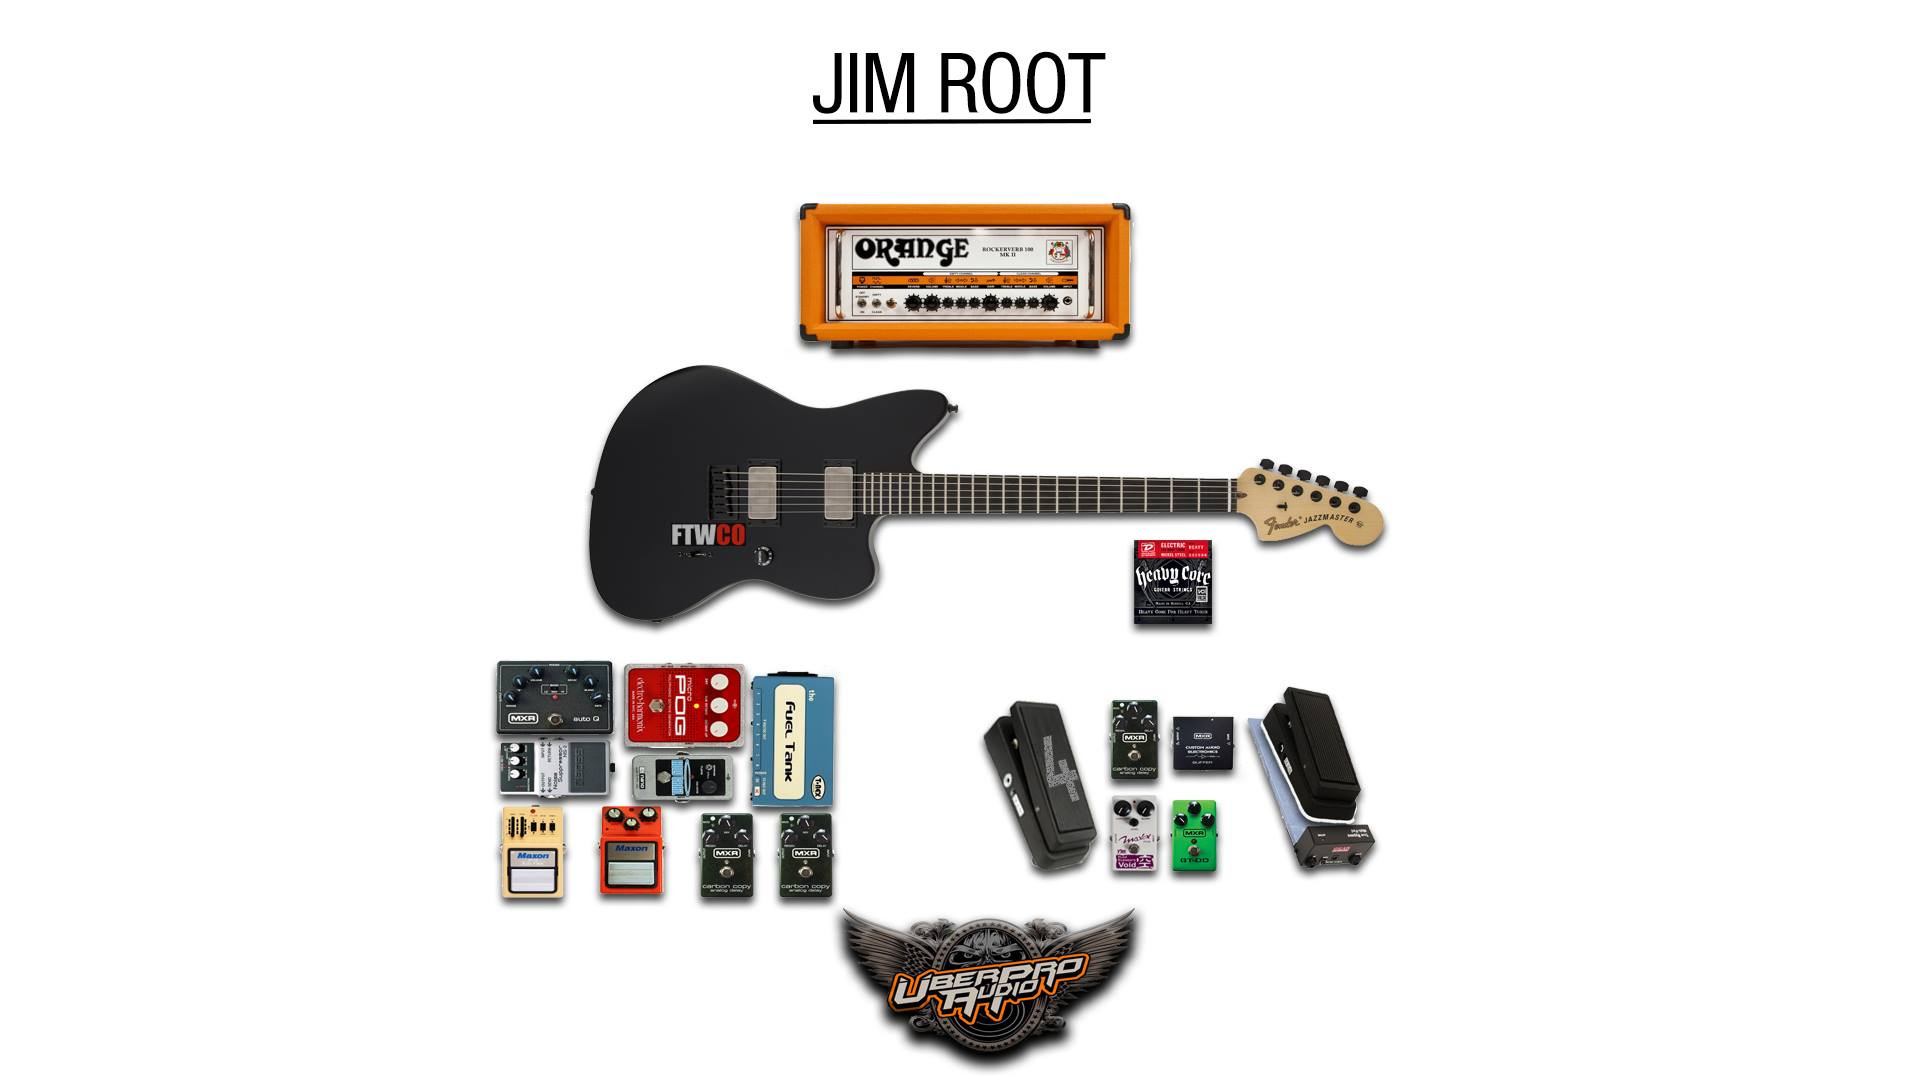 Jim Root Guitar Rig Picture